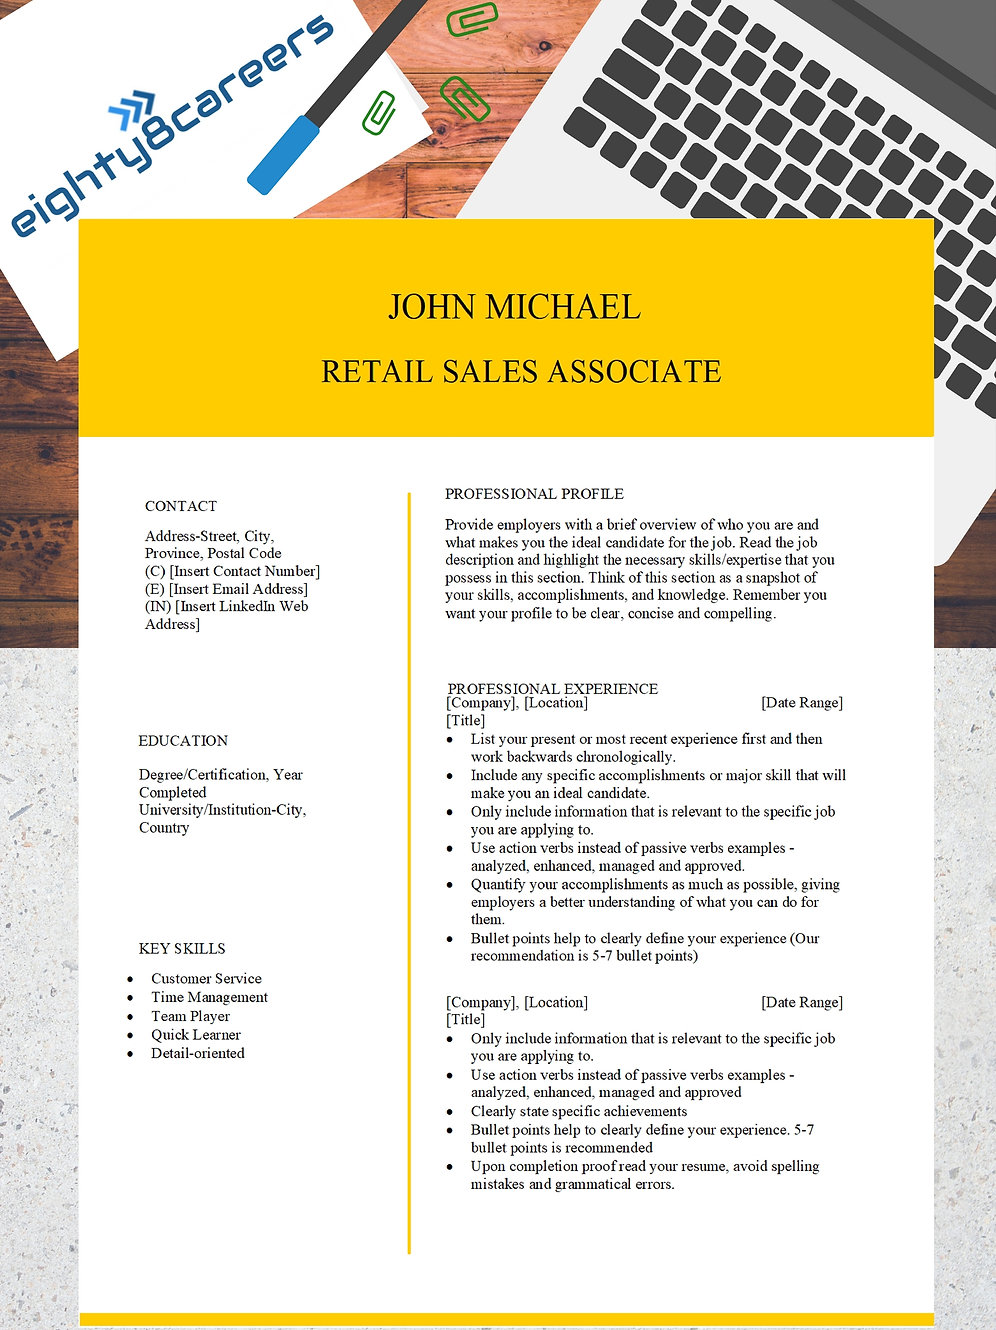 Retail Associate Cover Letter & Resume Template: Relevant Content Included  -JM